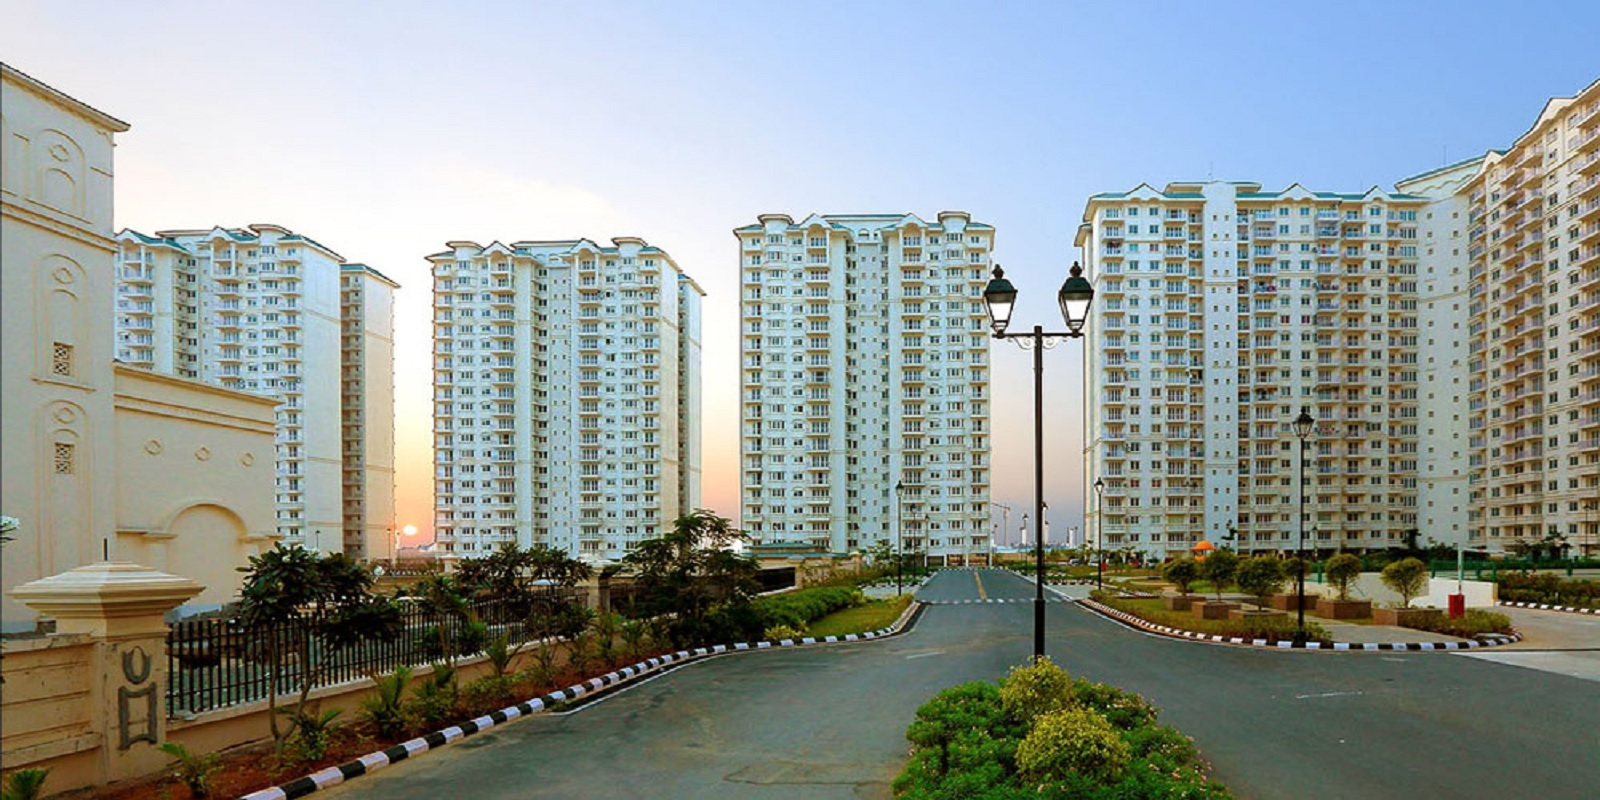 dlf gardencity project project large image1